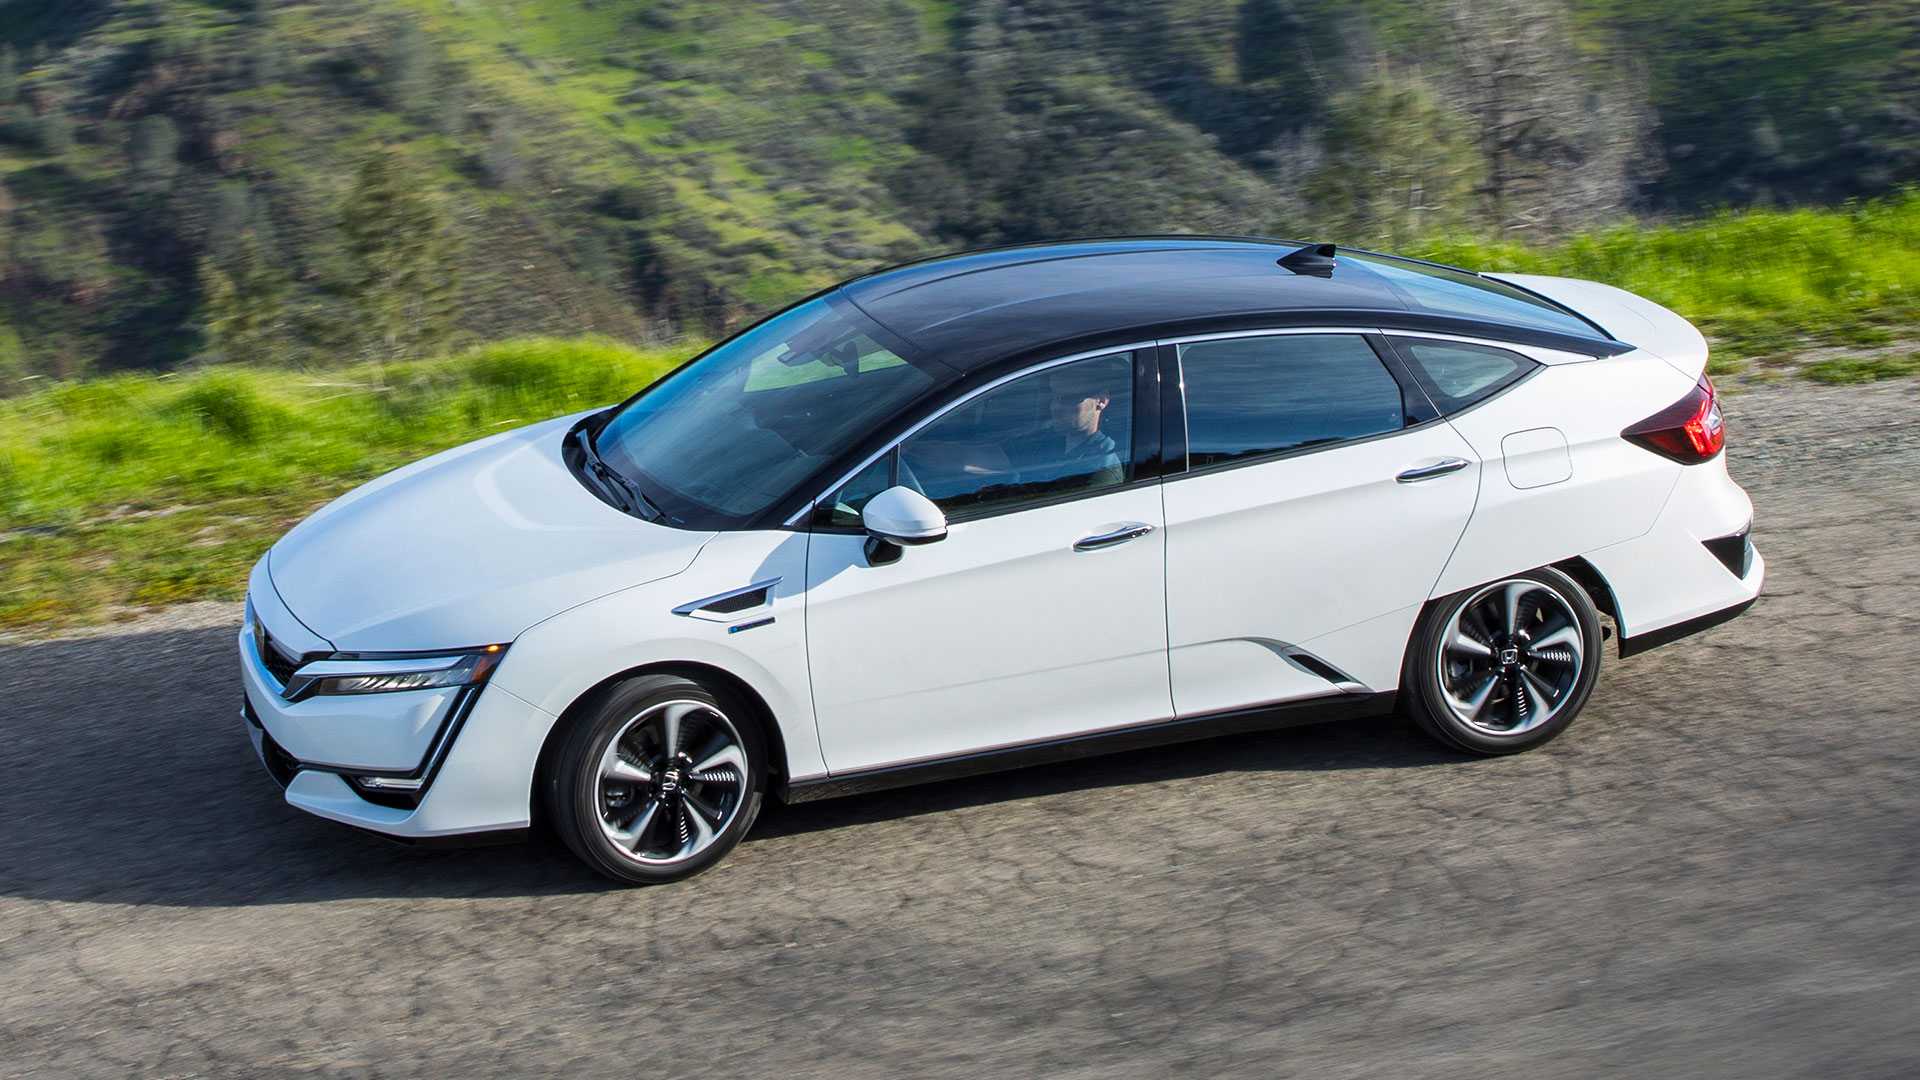 EV Comparison: 3 Flavors Of Honda Clarity: PHEV, BEV & Fuel